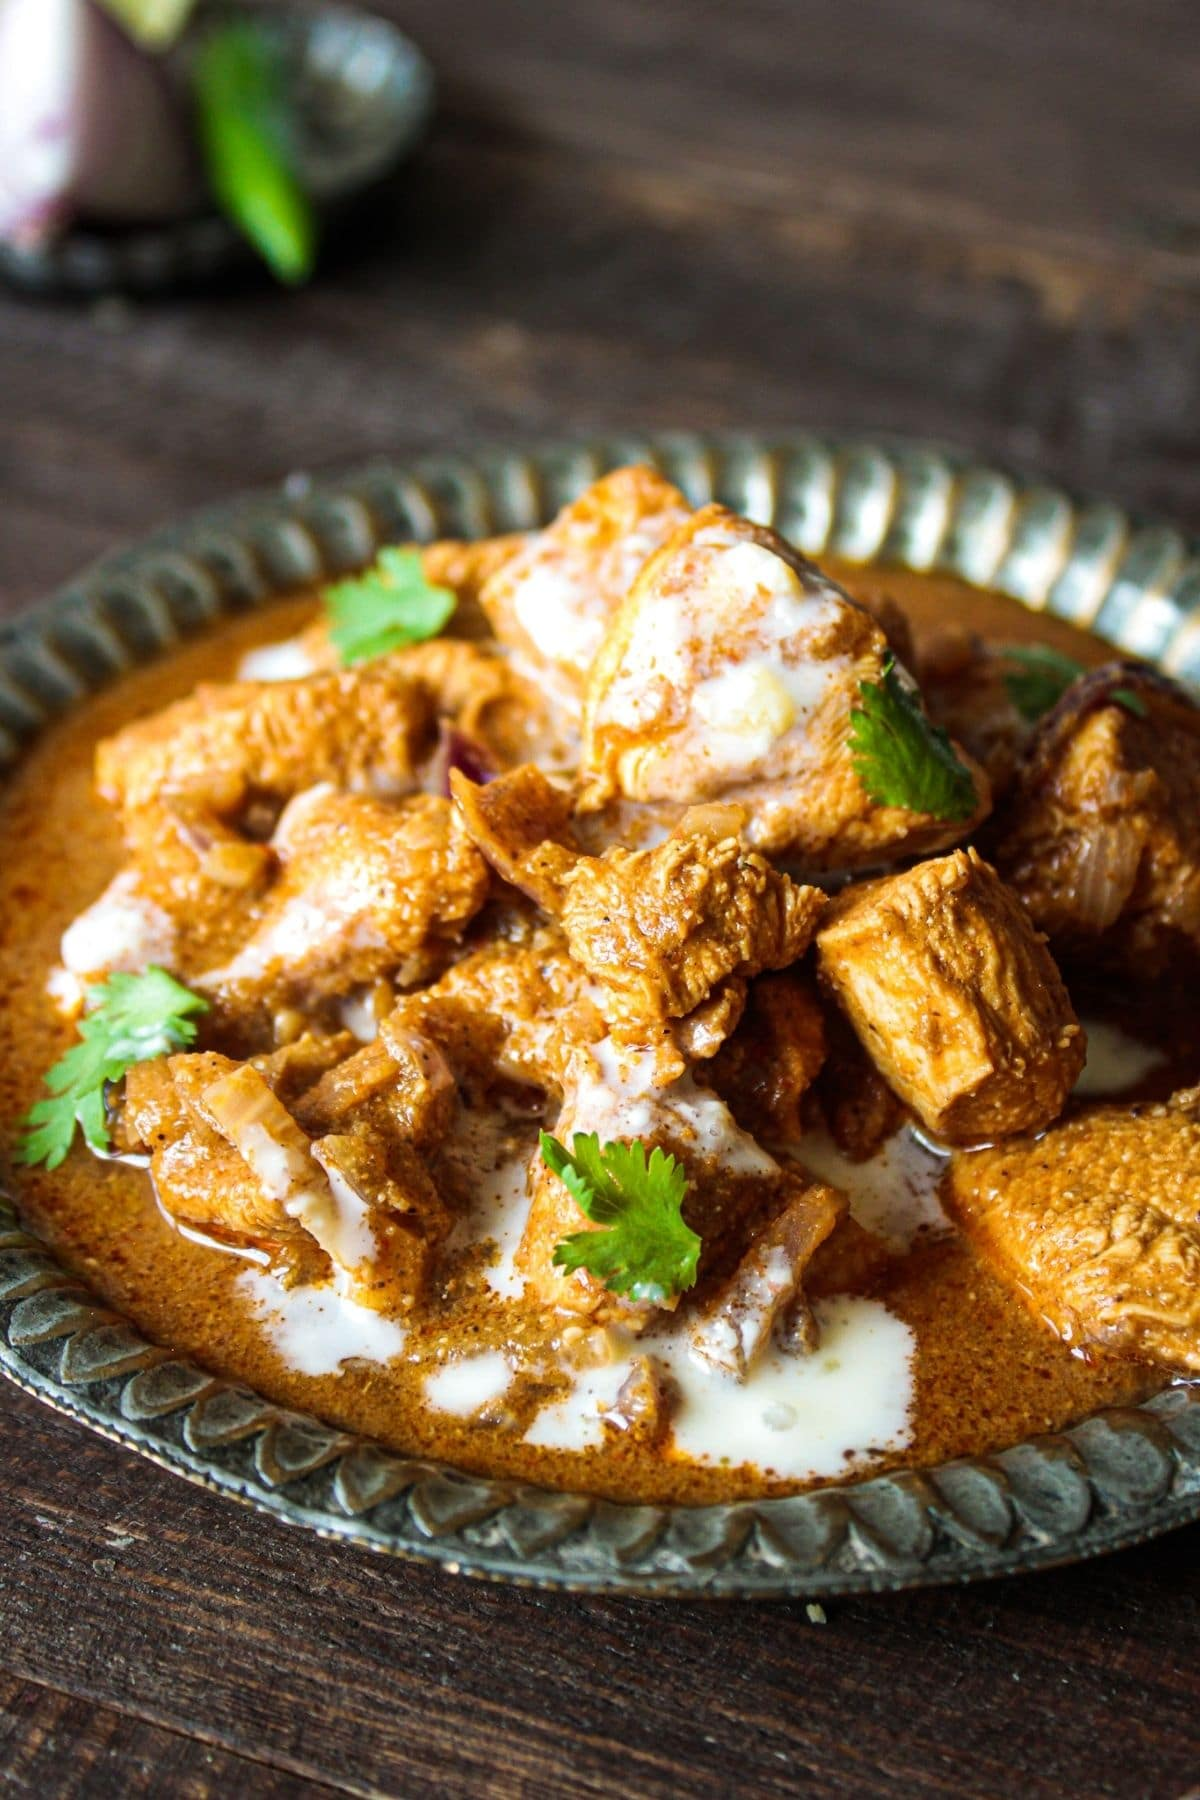 Green bowl of chicken in vindaloo sauce with cilantro and cream on top